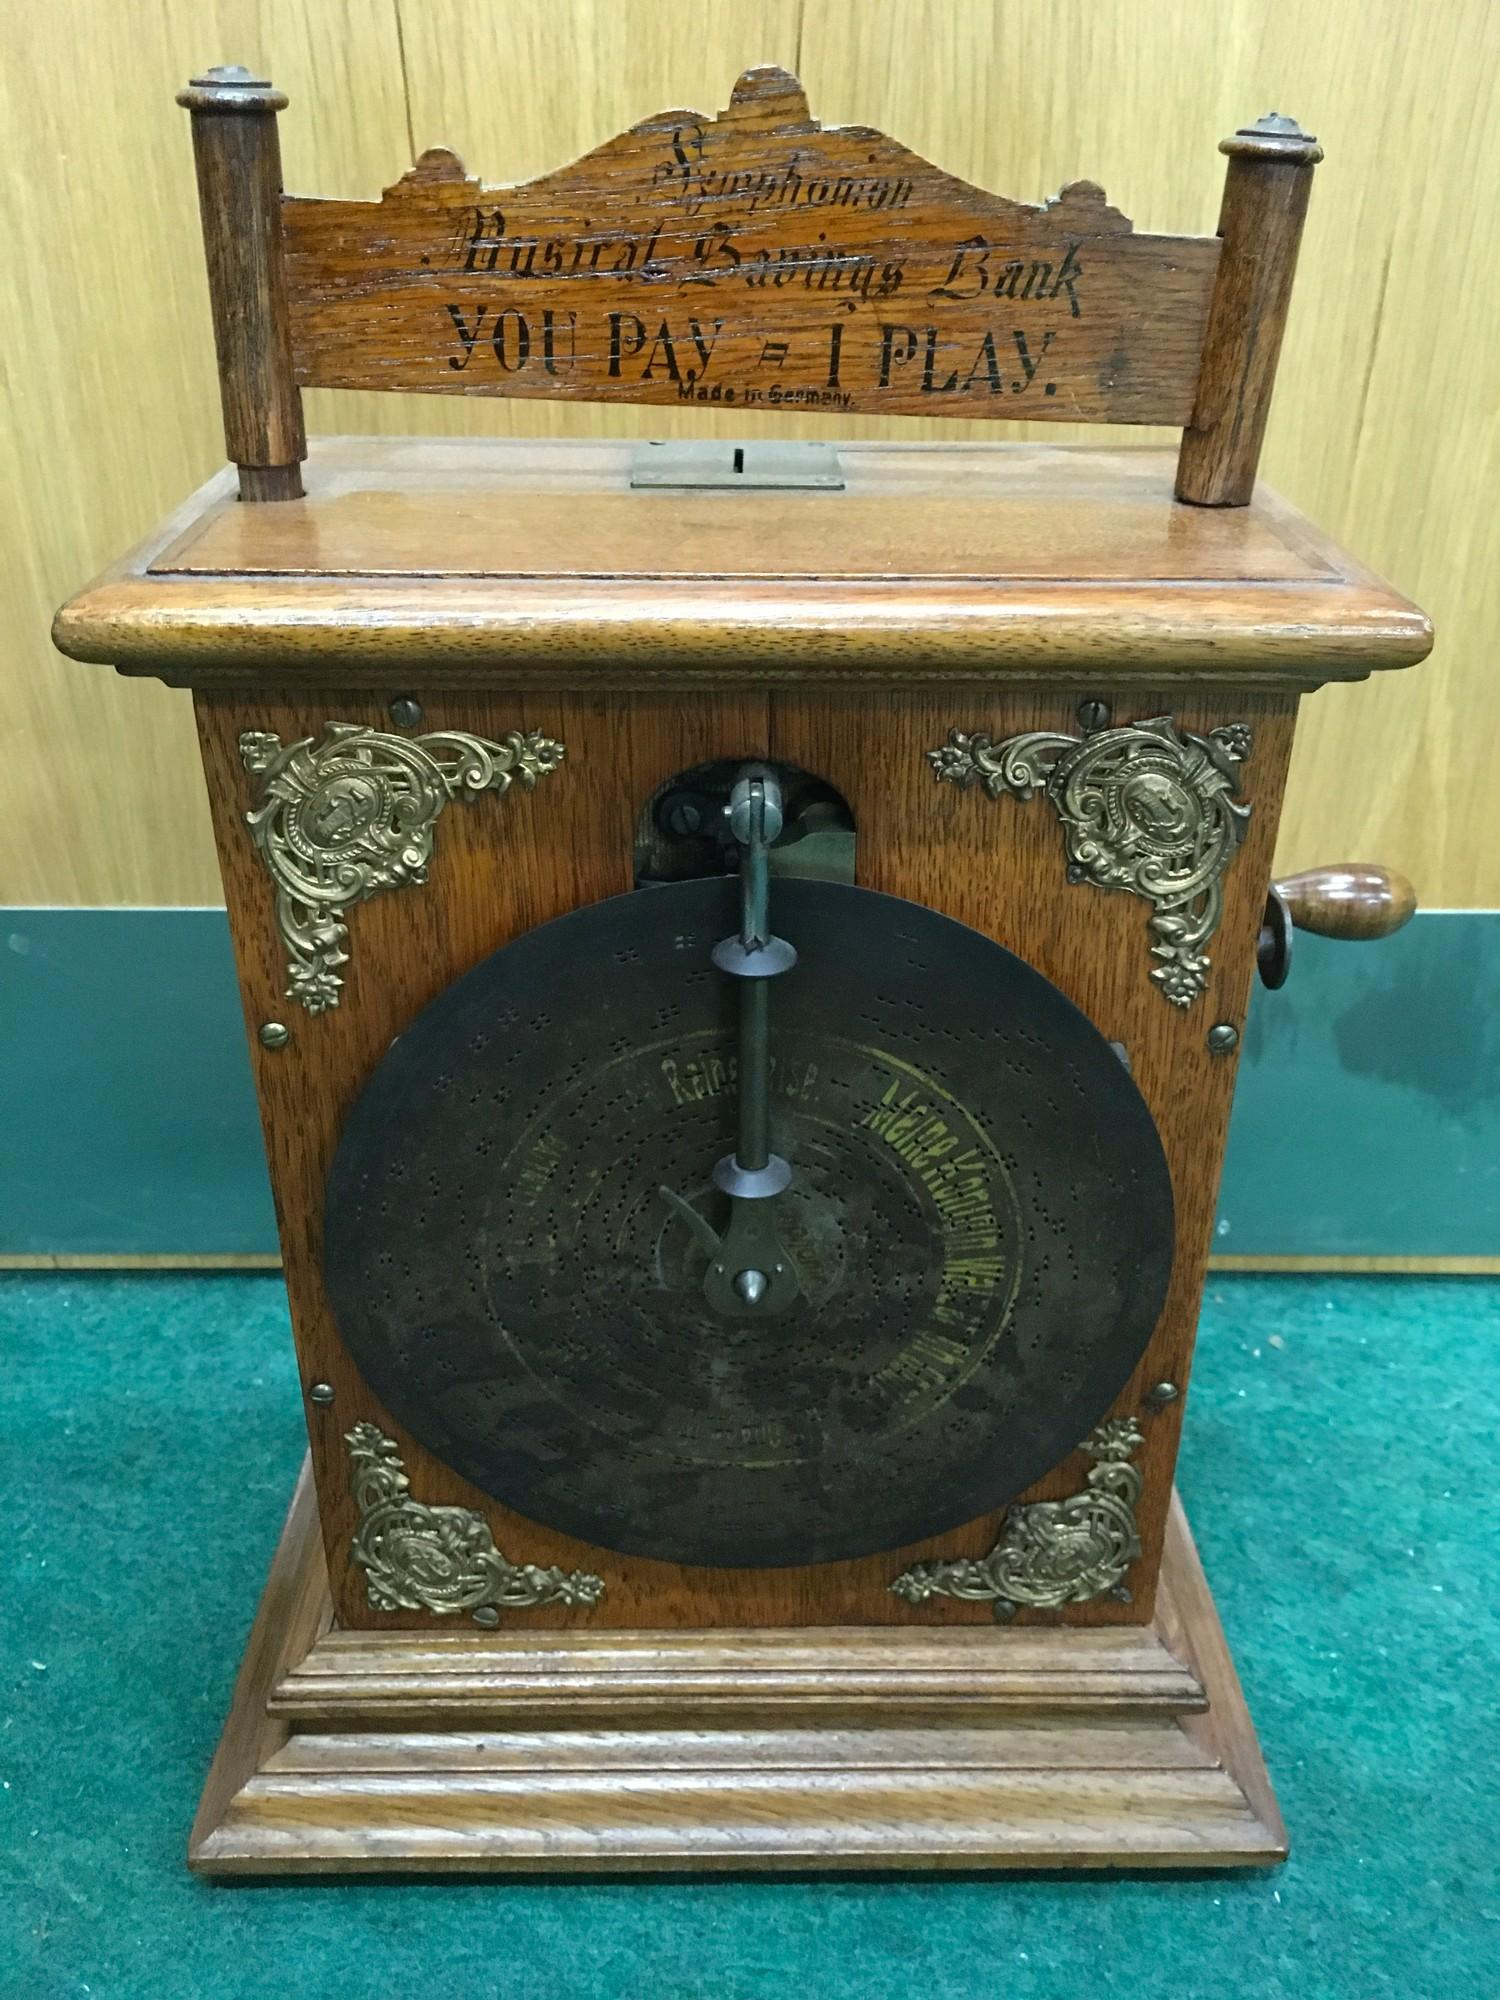 Extremely Rare Small Coin Operated Symphonium No.105 The Kaisers Music Box. Made in approx 1900. - Image 2 of 2